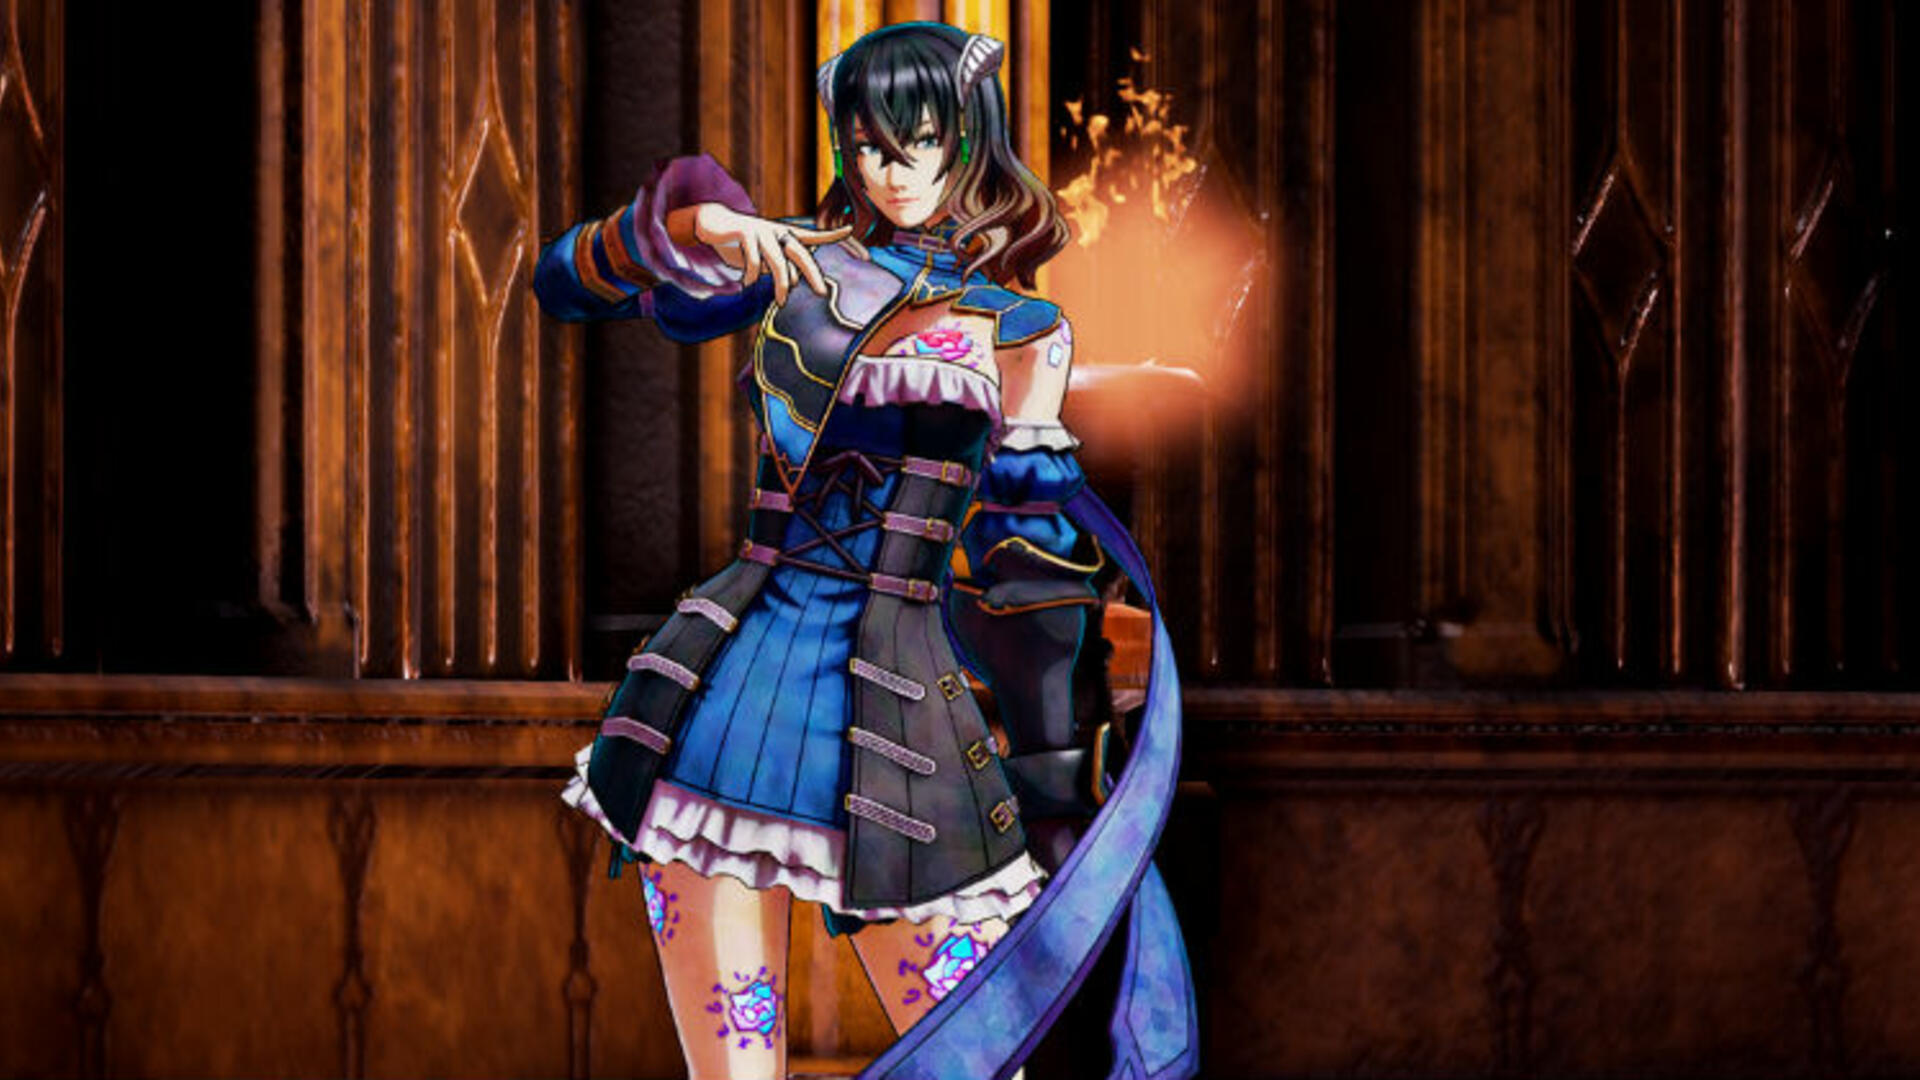 Bloodstained Wins the Prize for E3's Best Thinly Veiled